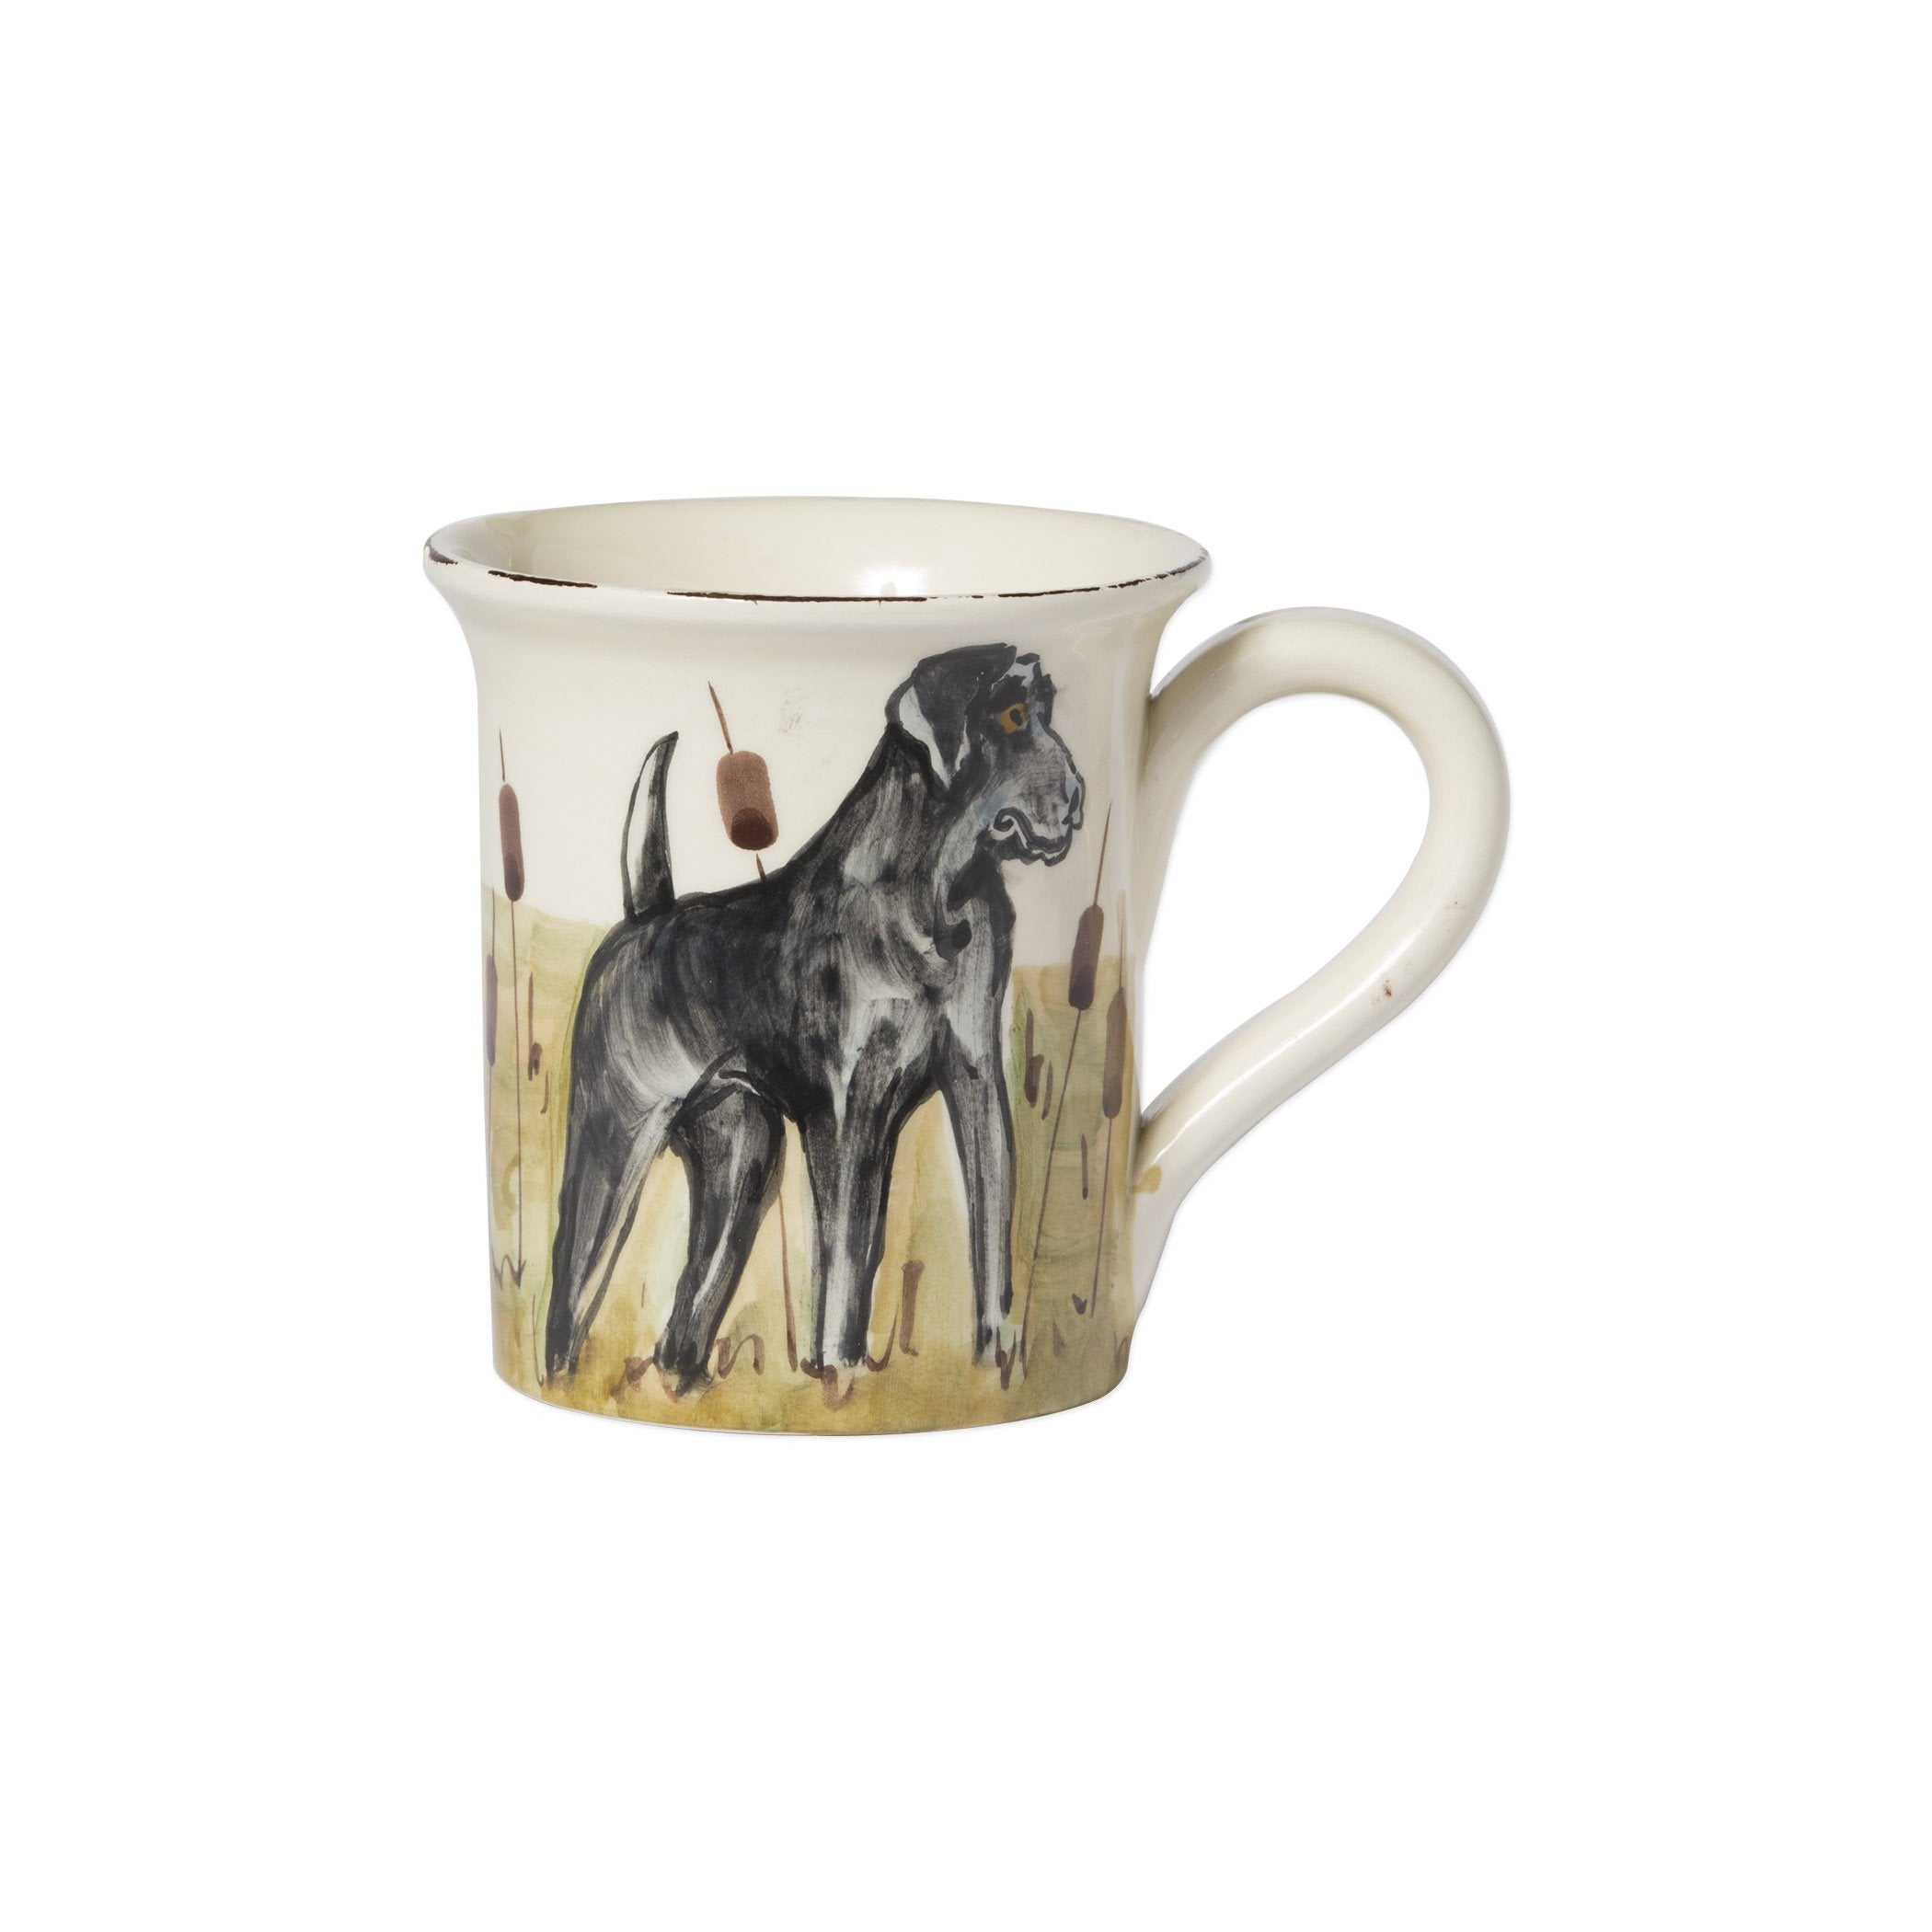 Wildlife Black Hunting Dog Mug